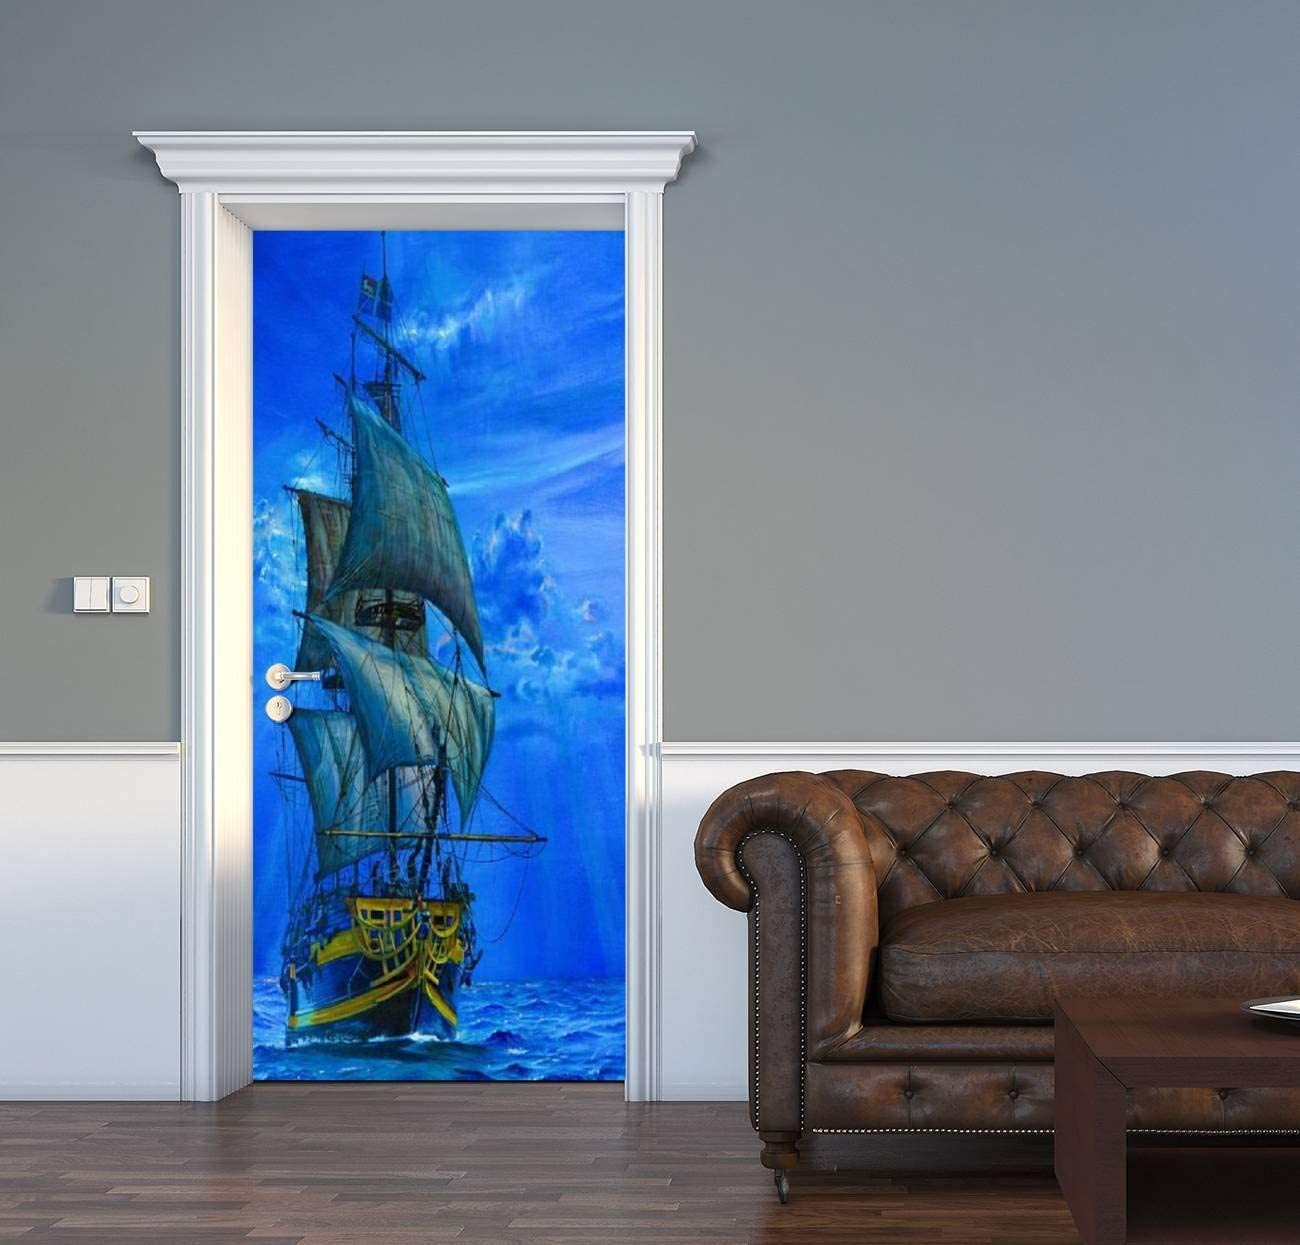 Amazon Com Acechic Door Decal Schooner Sailing At Sunset Pirate Ship 3d Door Sticker Removable Self Adhesive Vintage Wall Decal Mural Wallpaper For Home Decor 30 3 W X 78 7 H Home Kitchen